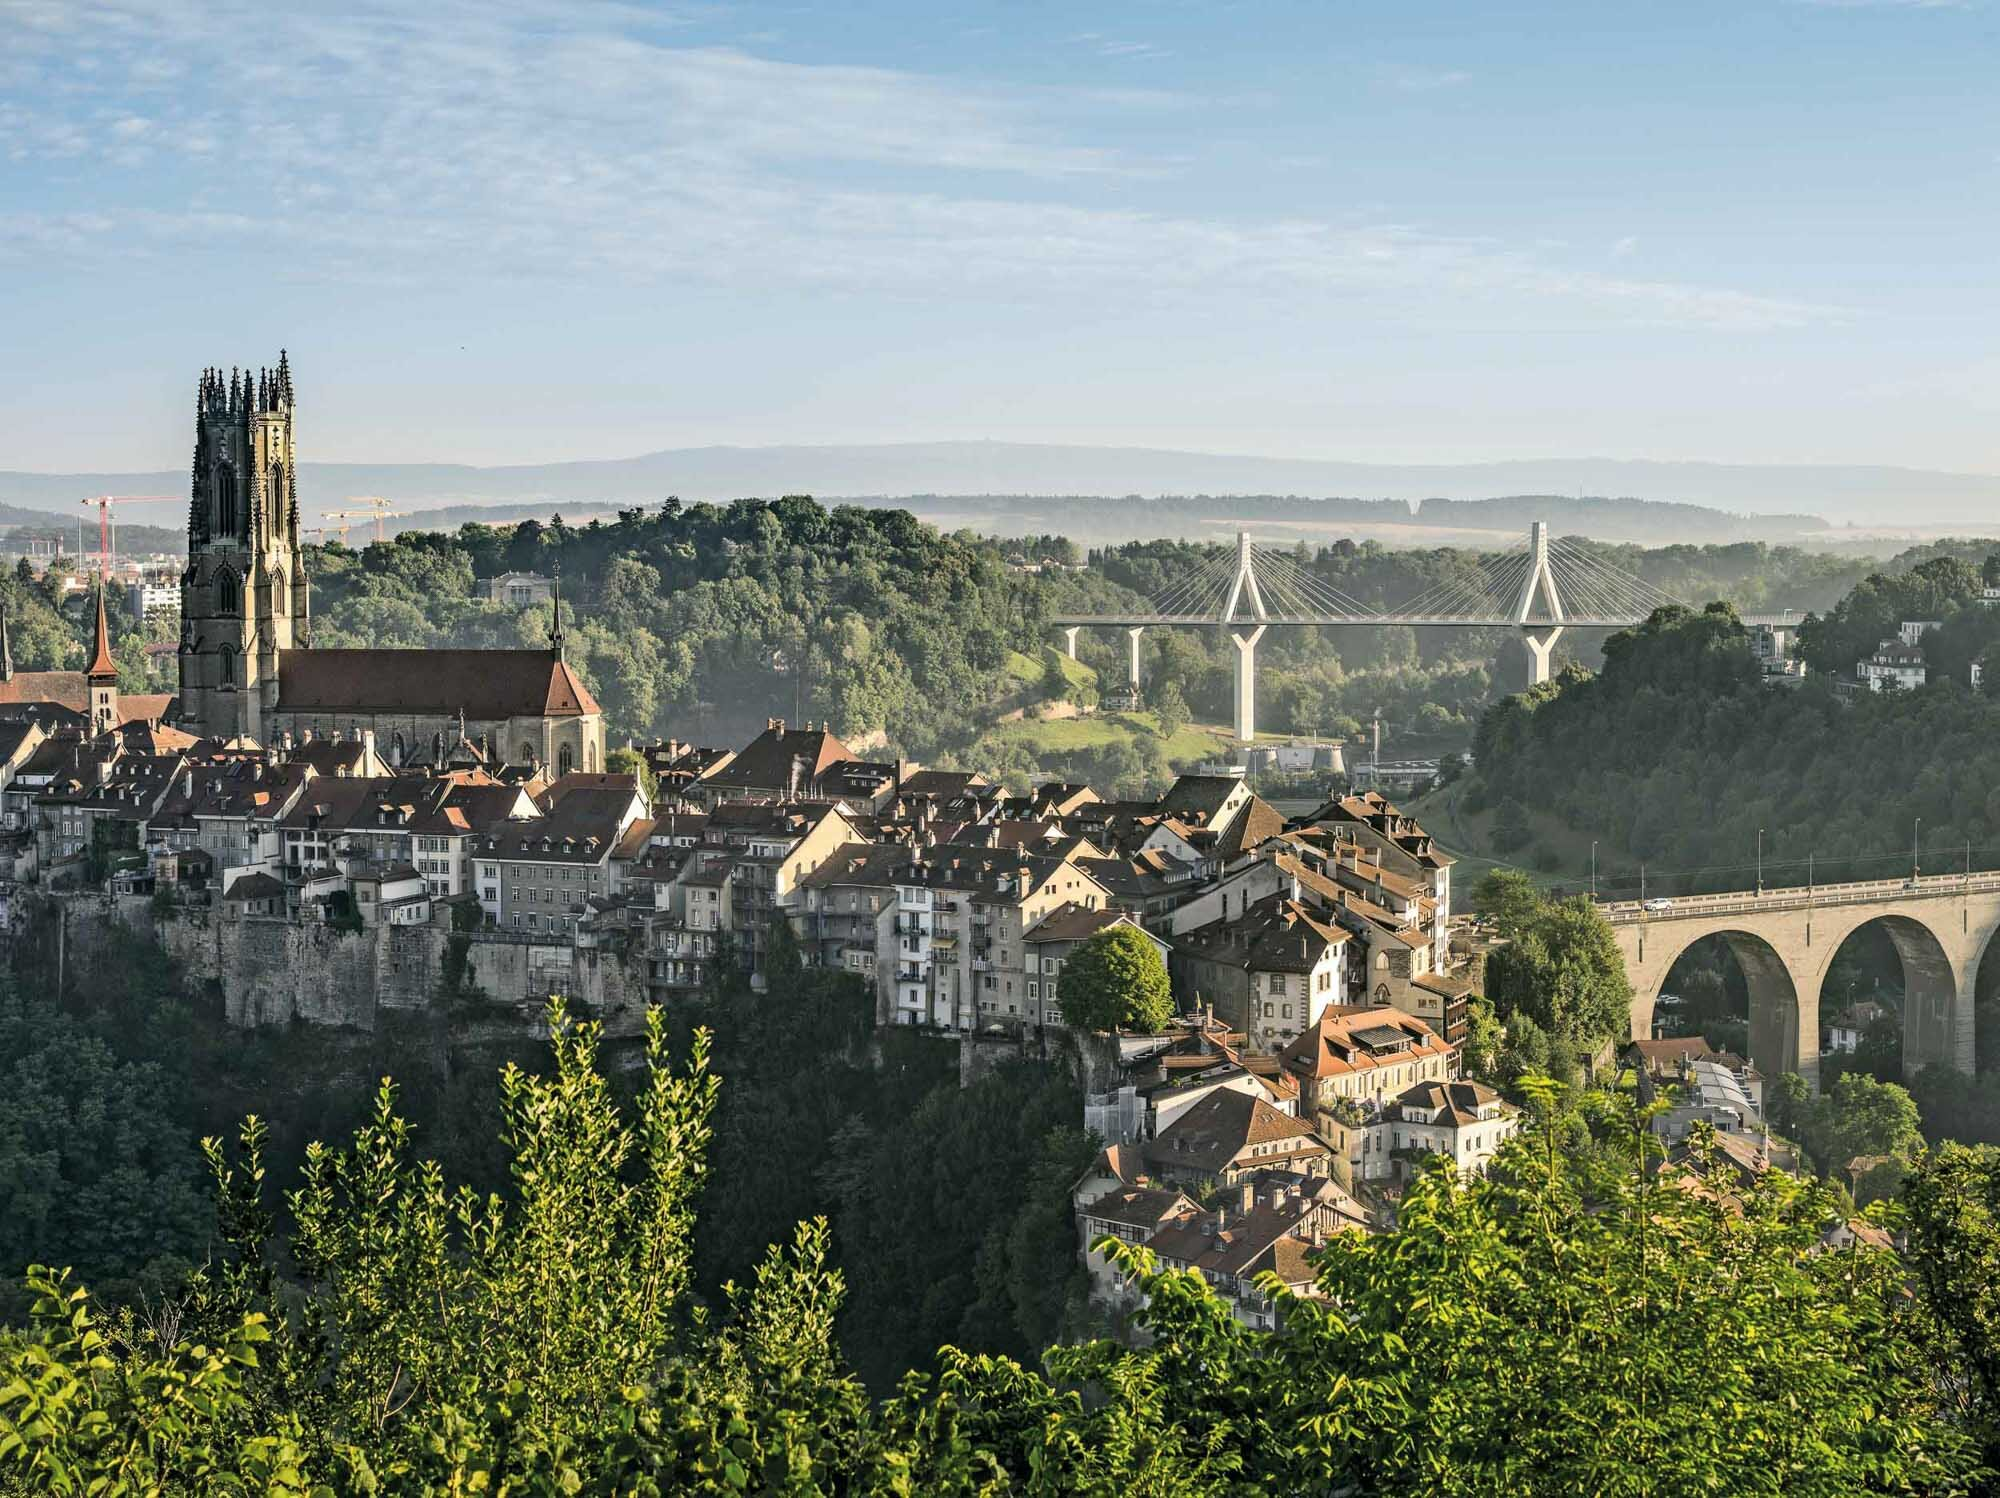 Cathedral and old town, Zaehringer- and Poya Bridge, Fribourg. Copyright by: Switzerland Tourism